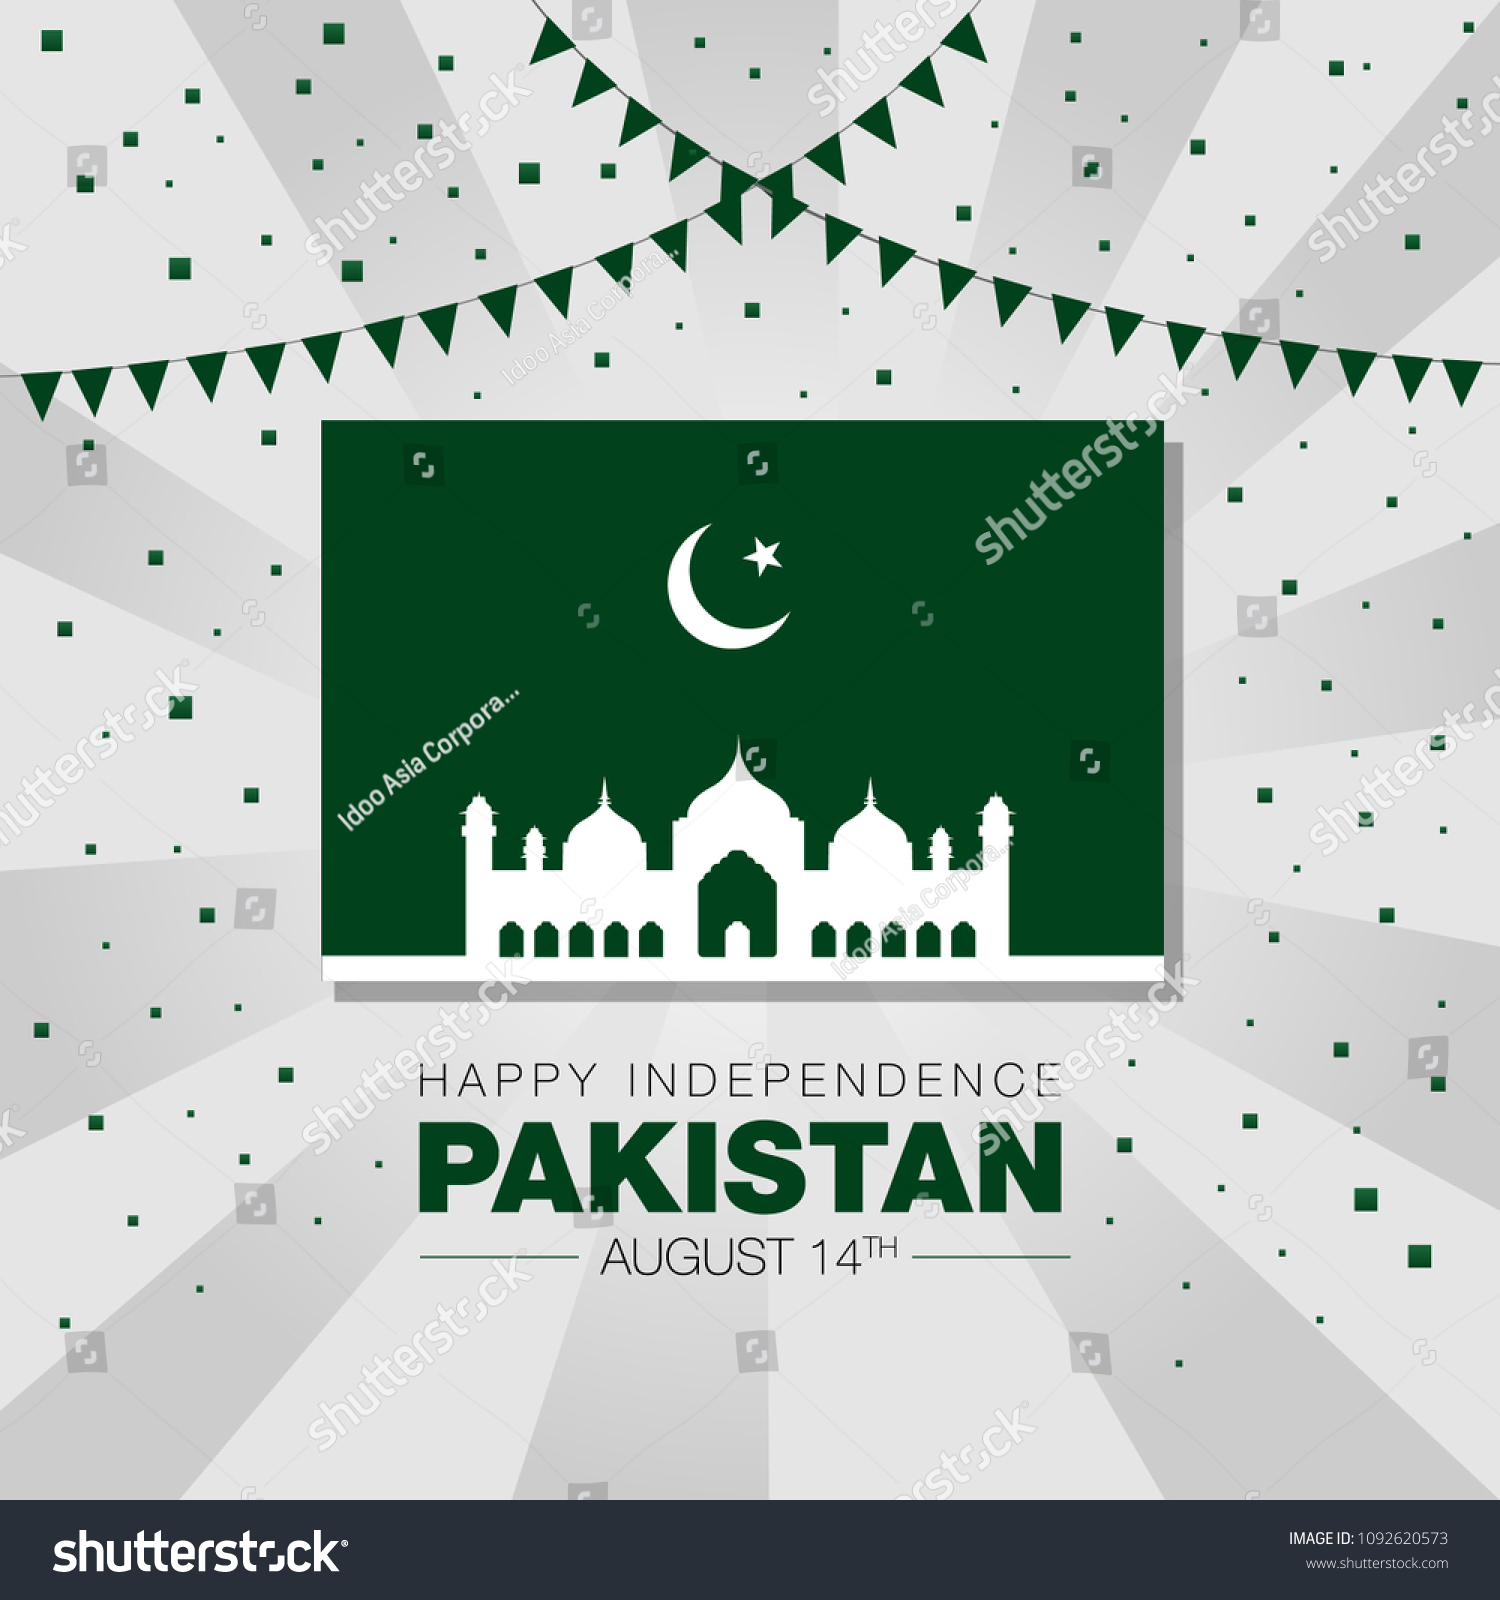 Pakistan Independence Day Celebration Vector Illustration Stock ...